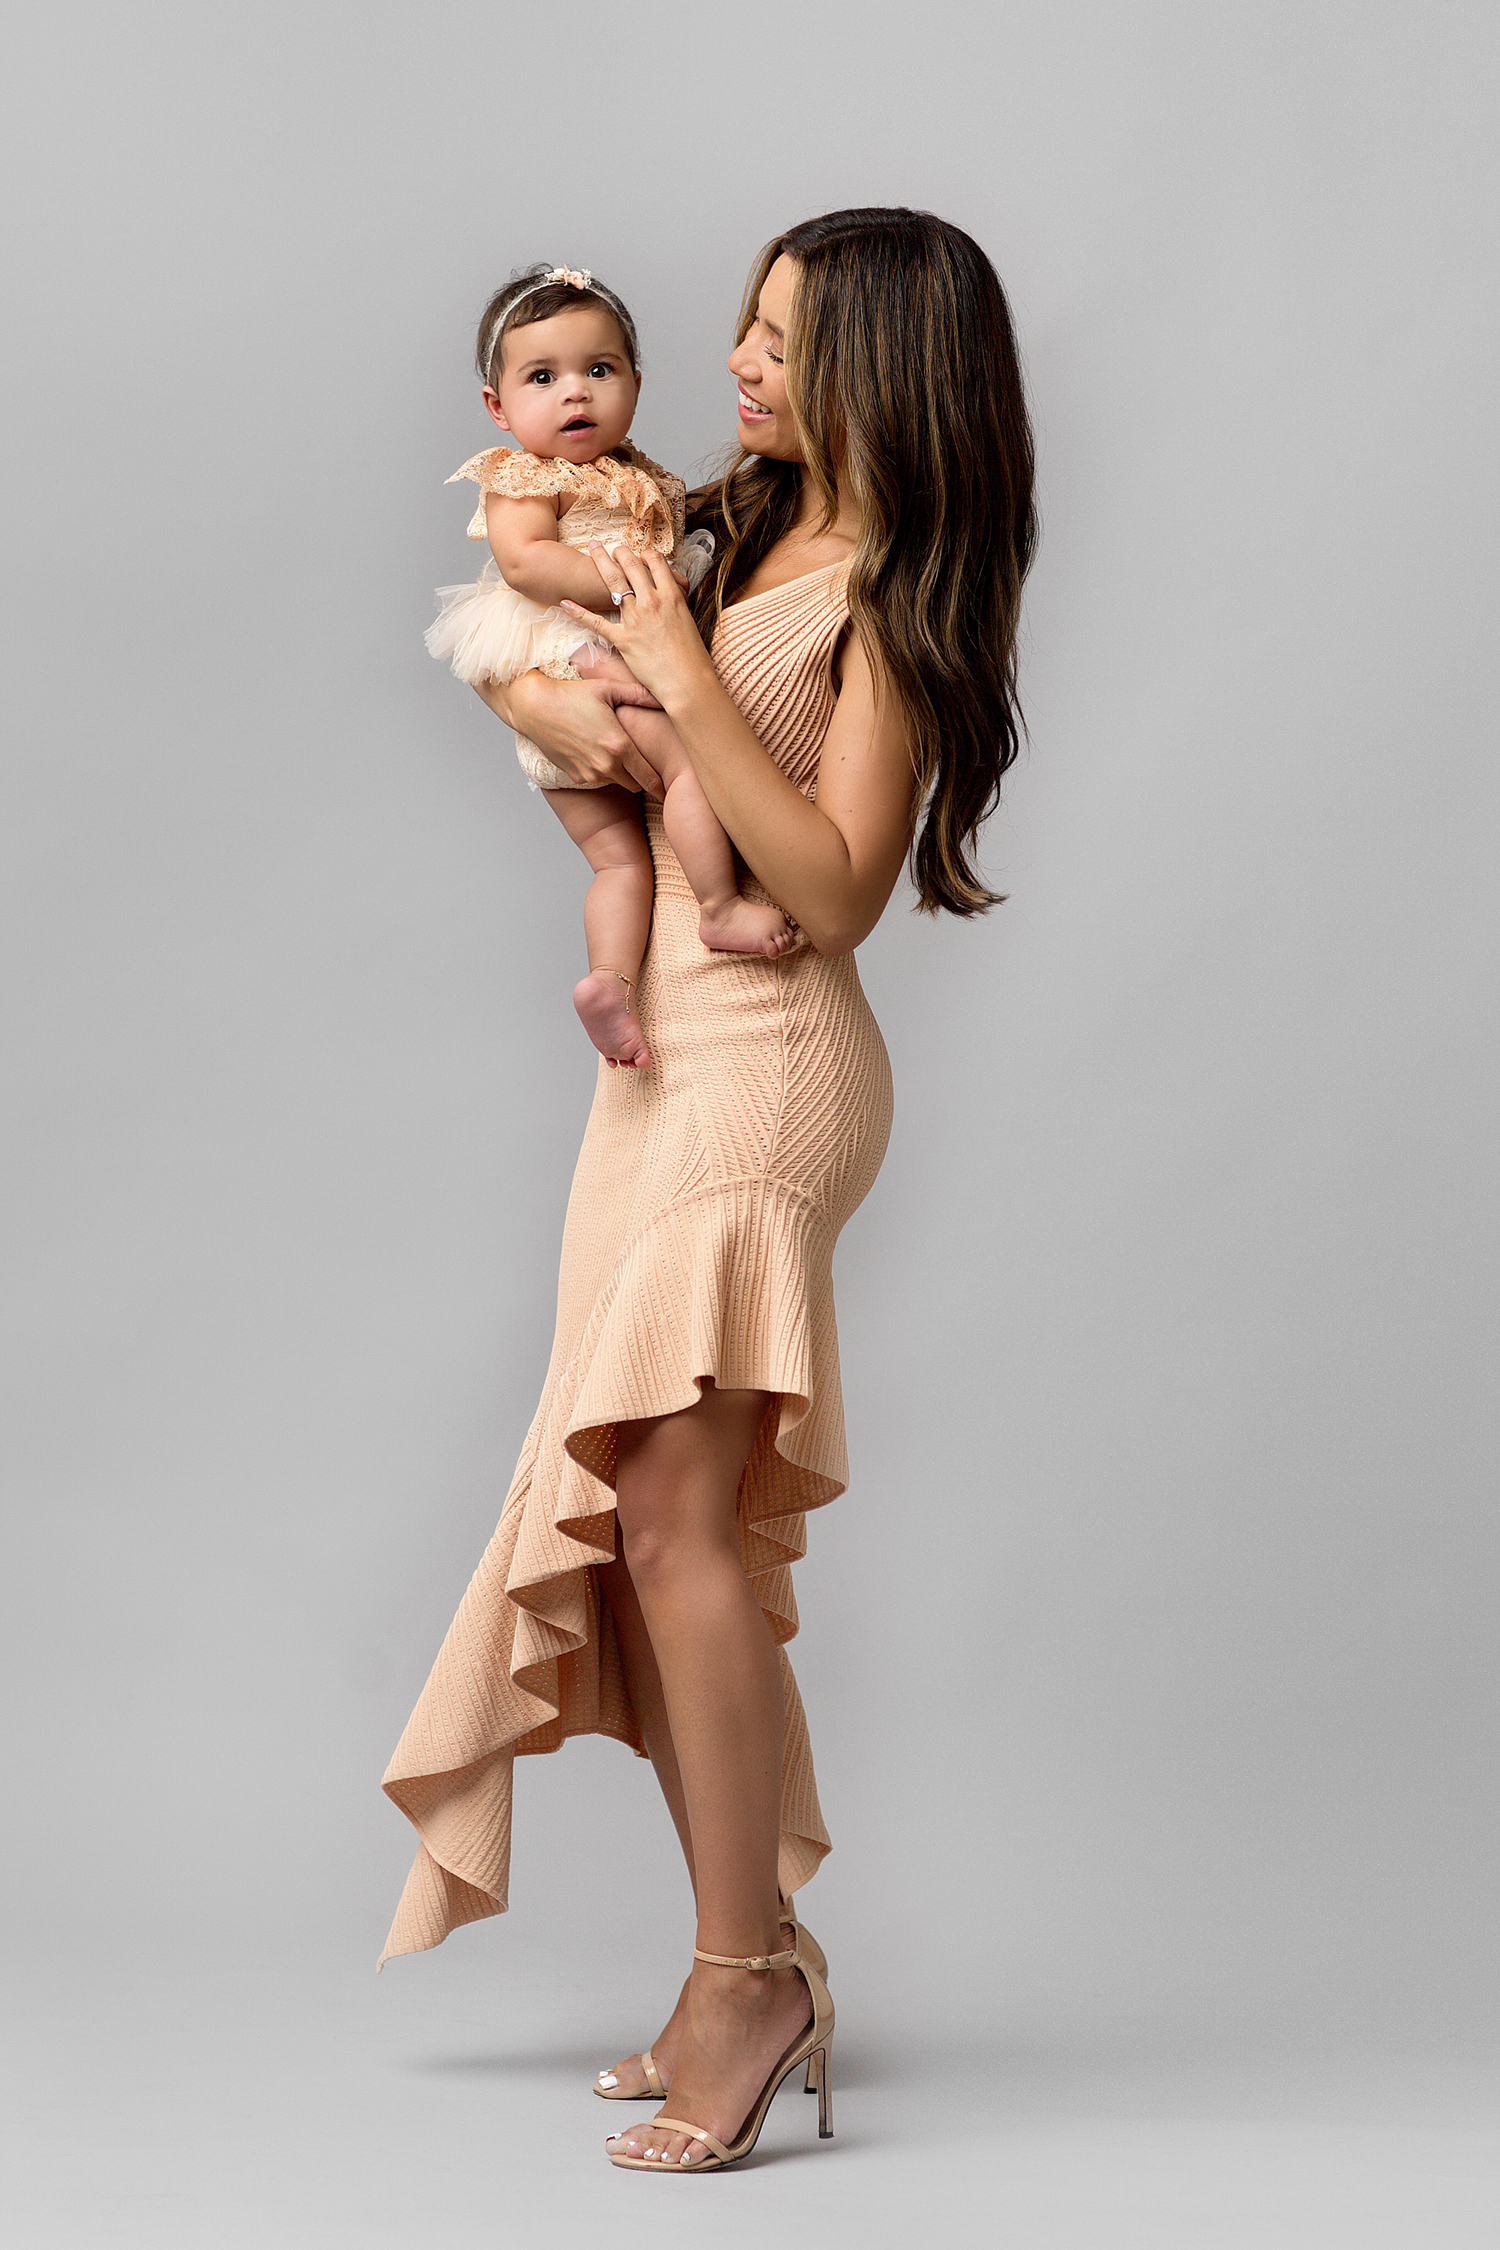 6 month baby and mama photoshoot outfits